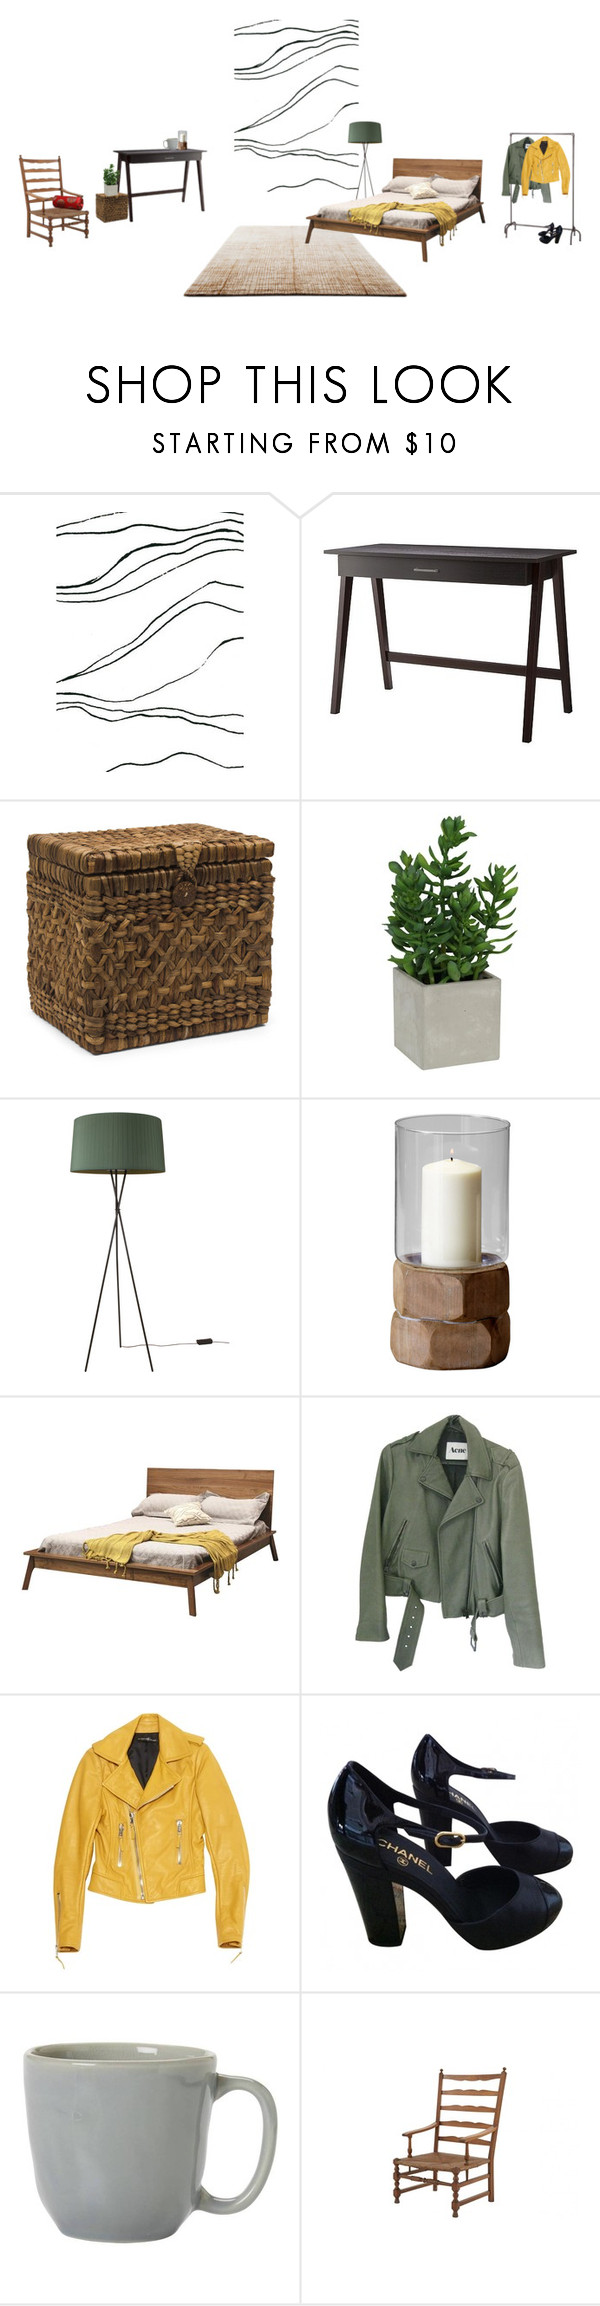 Threshold home decor shop for threshold home decor on polyvore -  Hollow Heart By Tricechara Liked On Polyvore Featuring Interior Interiors Interior